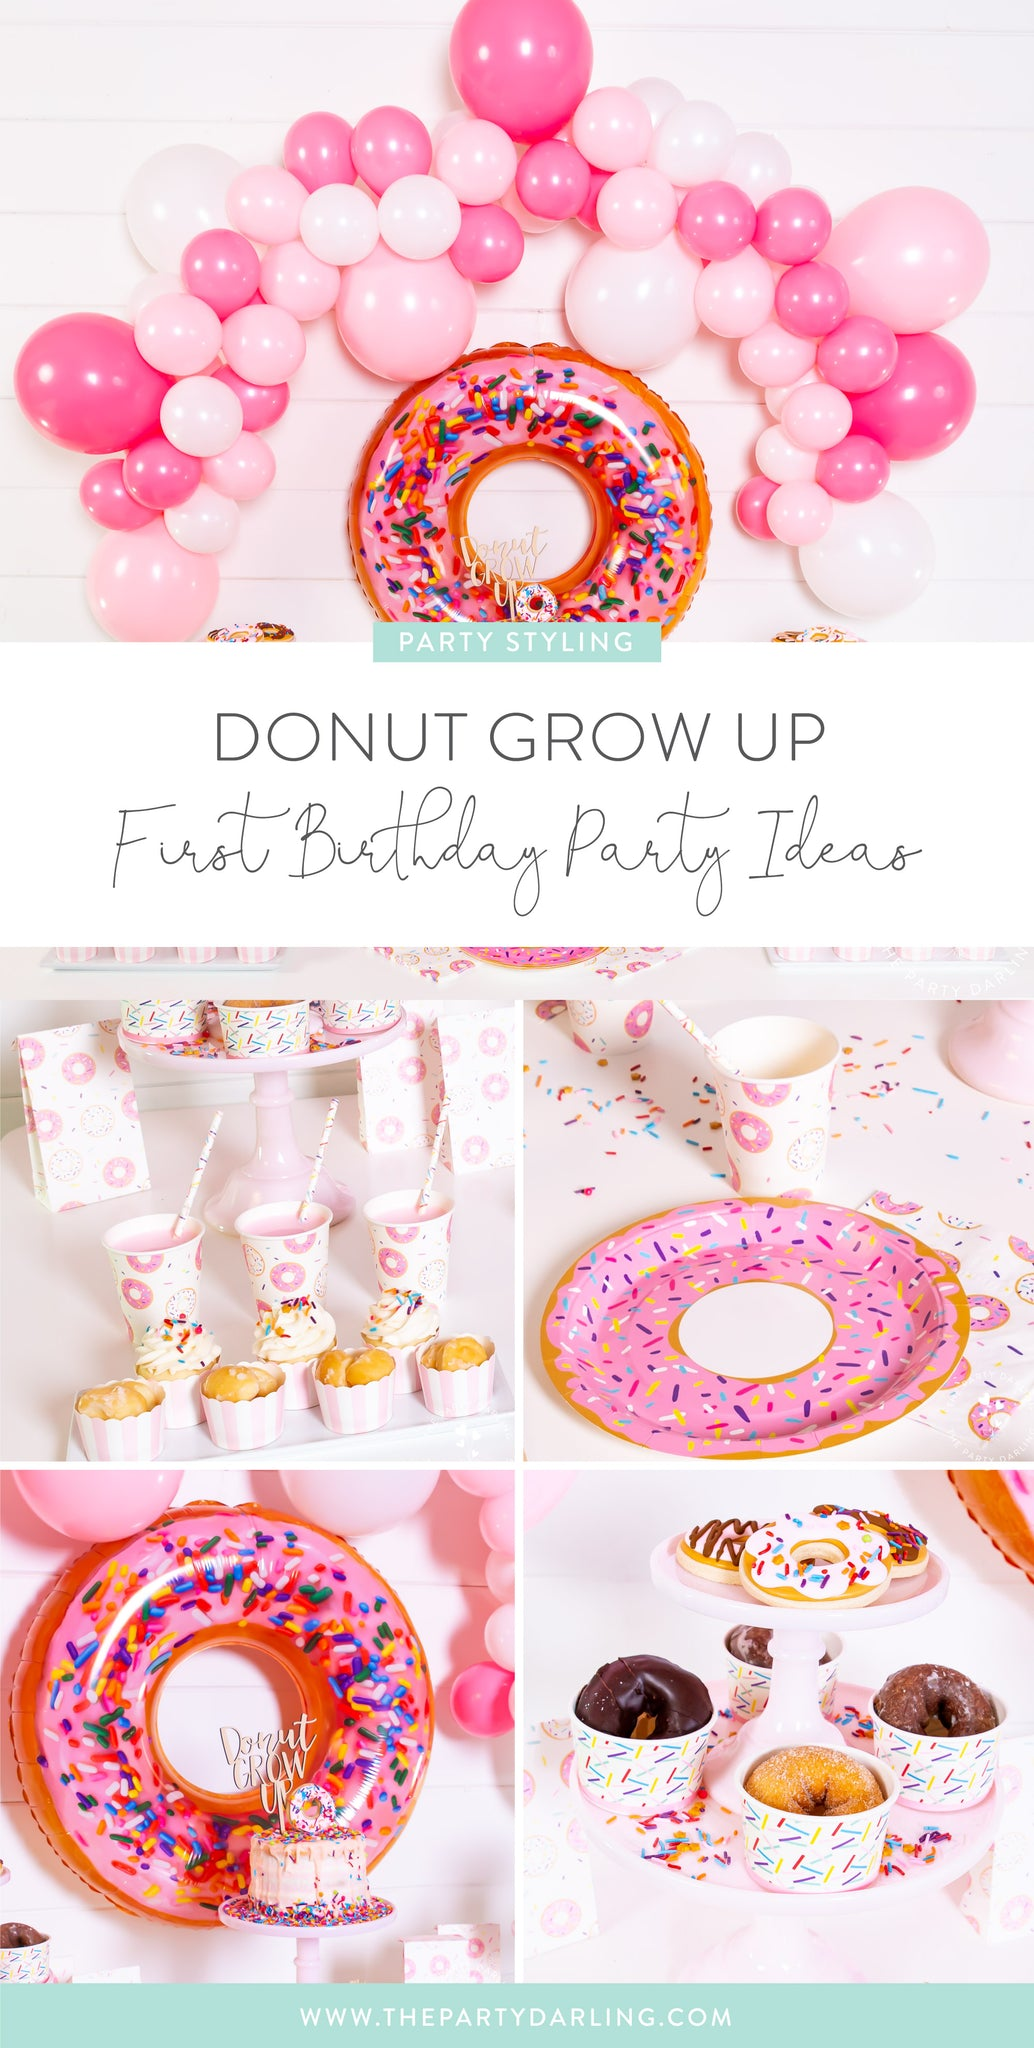 donut grow up first birthday party